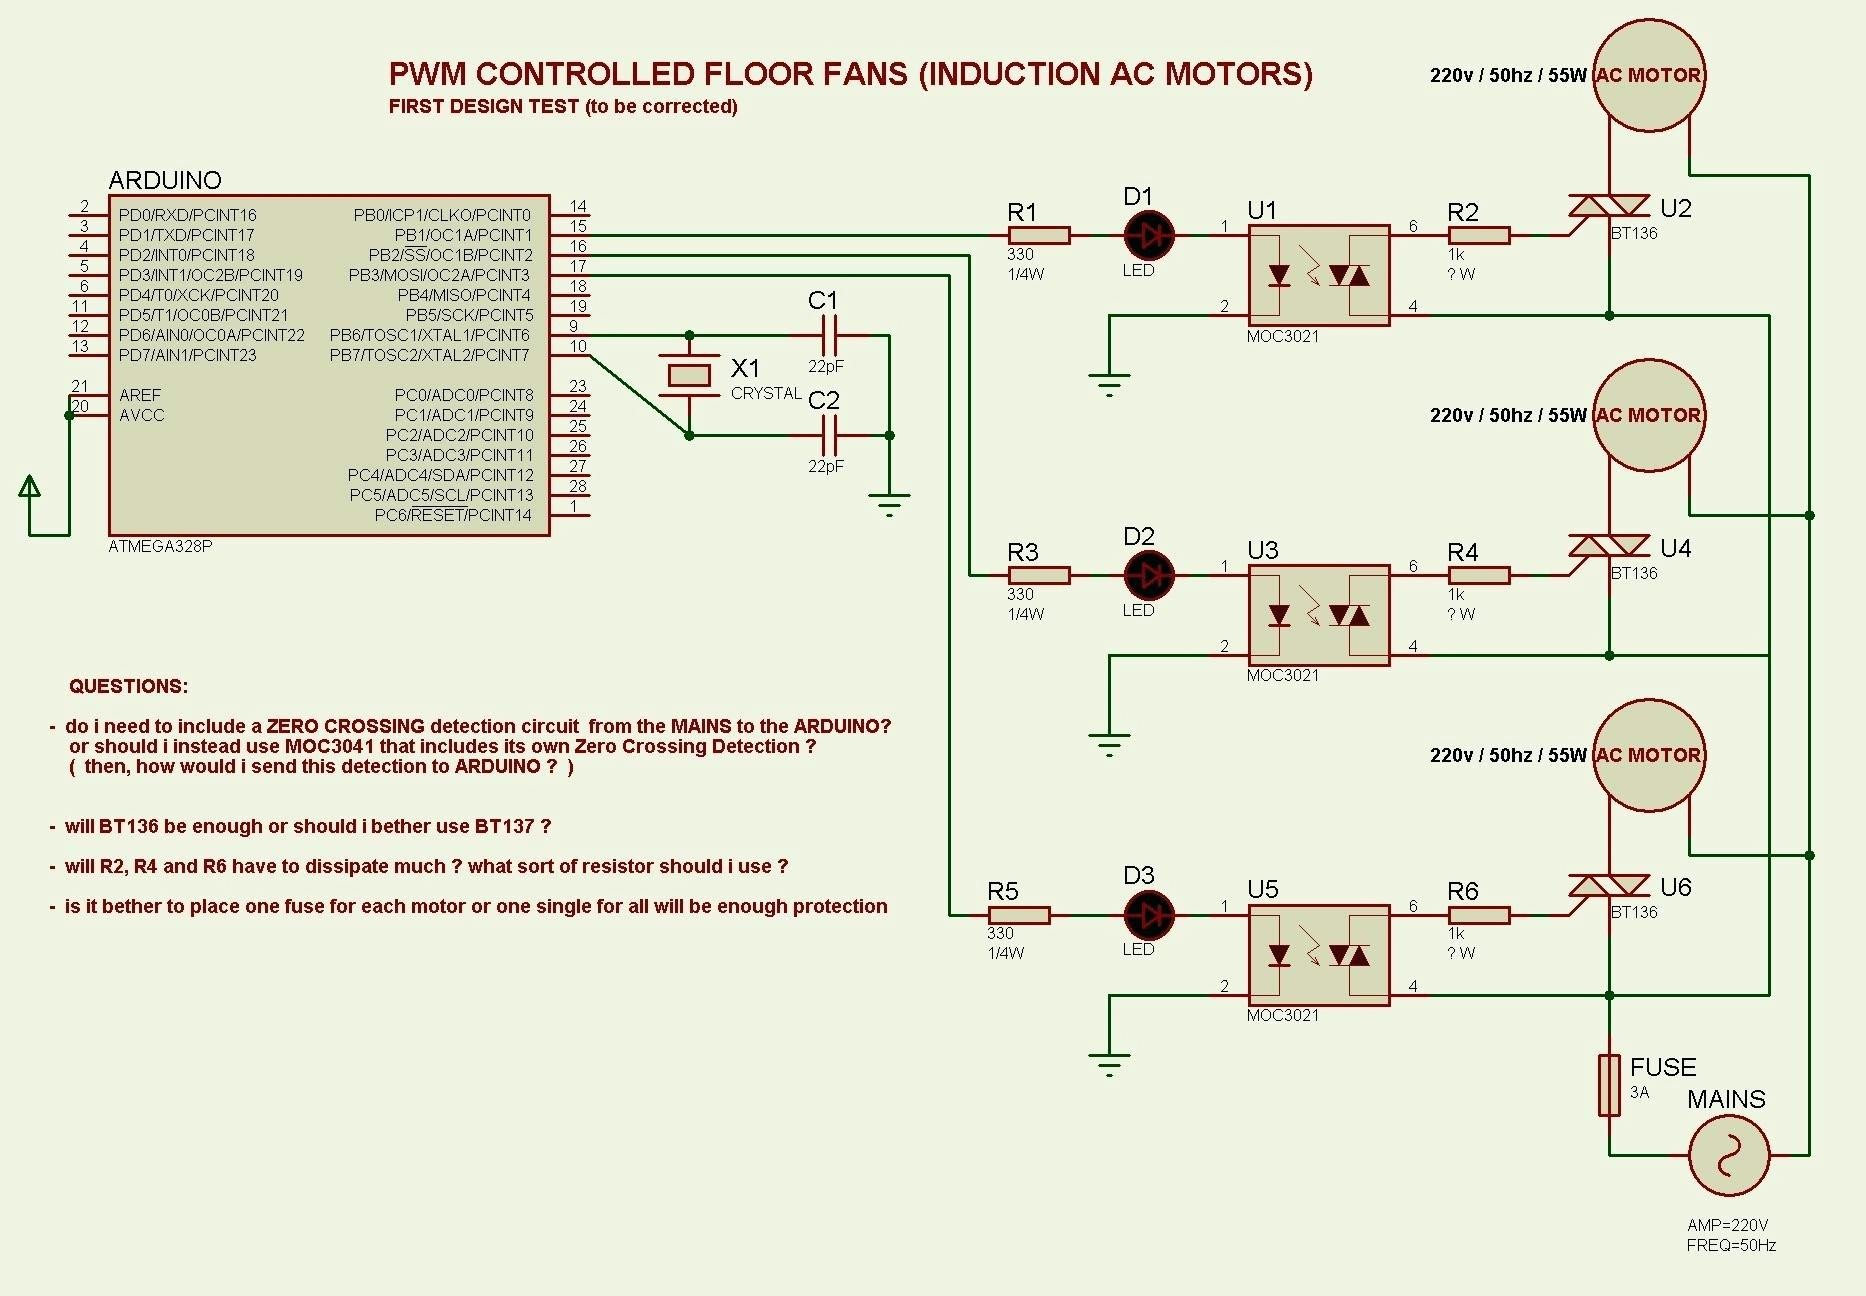 Baldor Motor Capacitor Wiring Diagram Types Single Phase Induction Of Best Ideas Everything You Need To